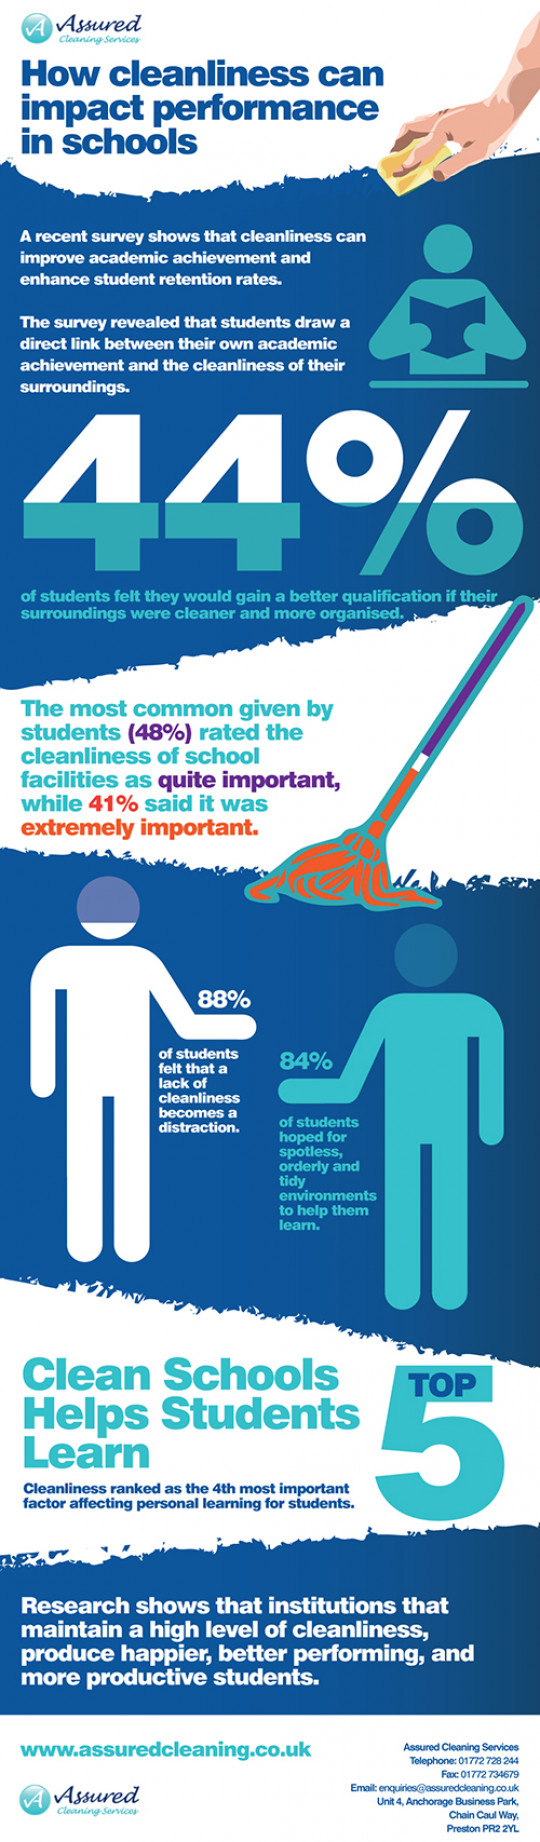 How cleanliness can impact performance in schools